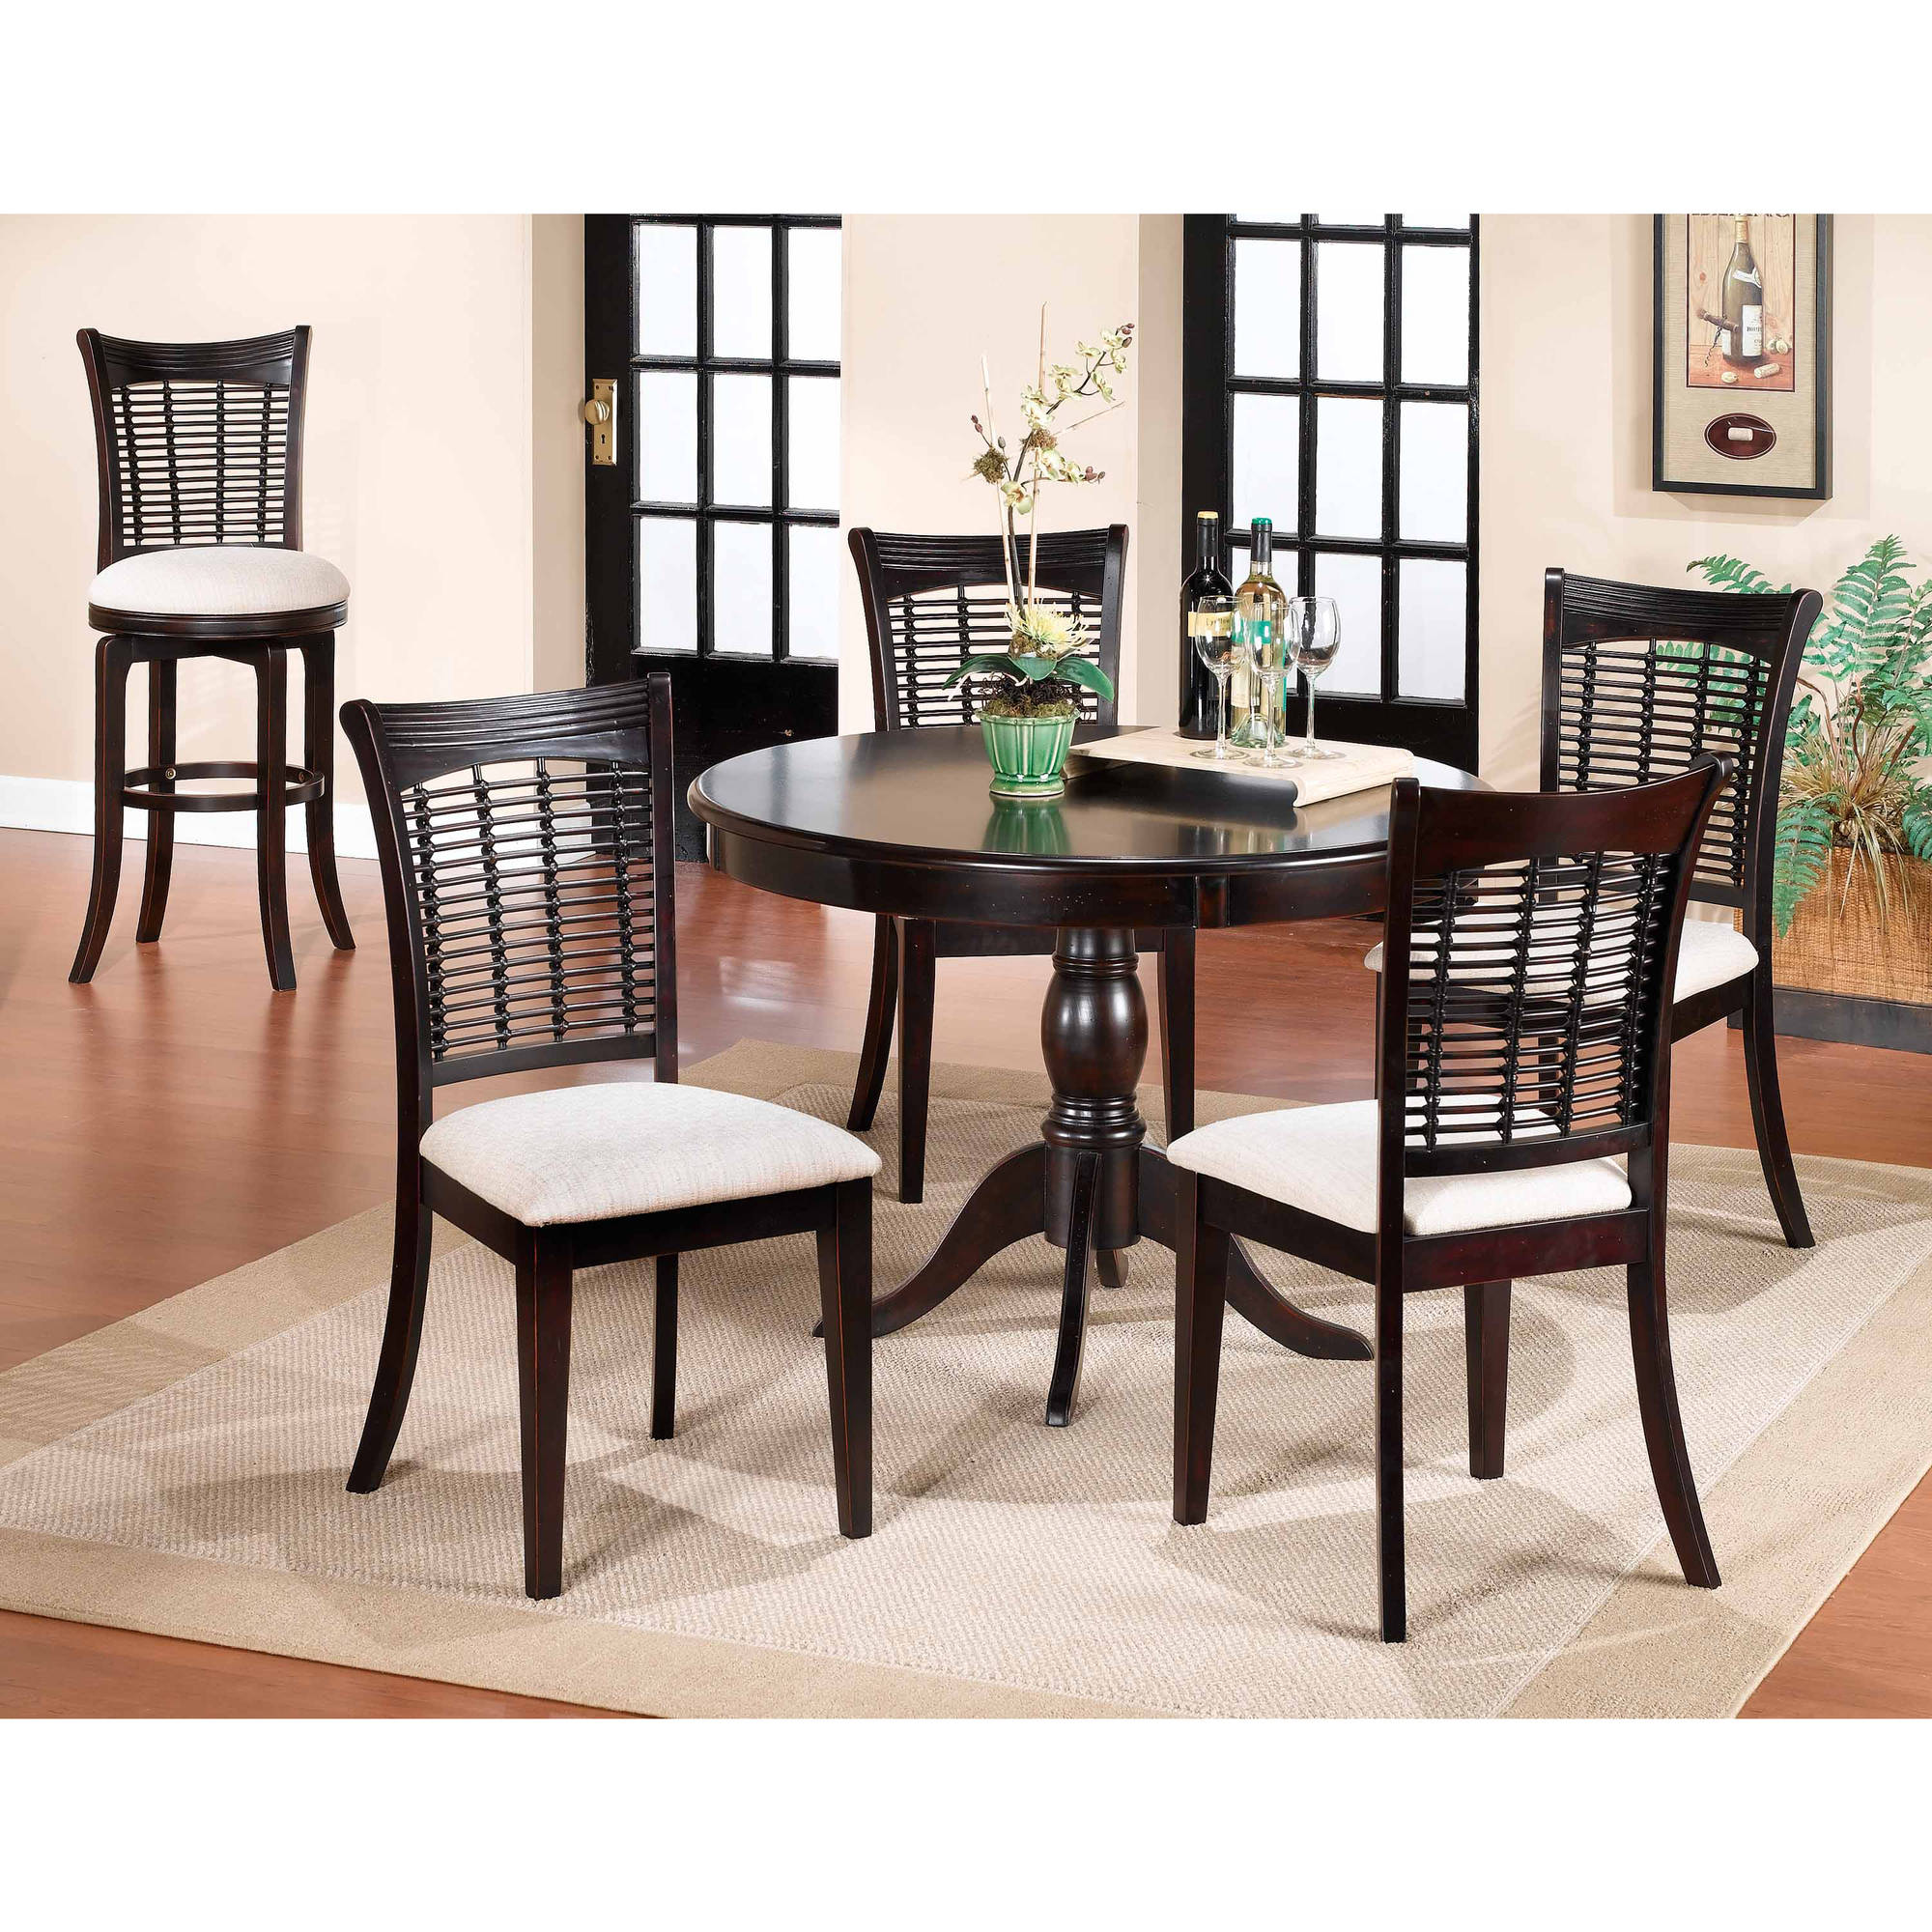 Hillsdale Furniture Bayberry 5-Piece Round Dining Room Set, Dark Cherry by Hillsdale